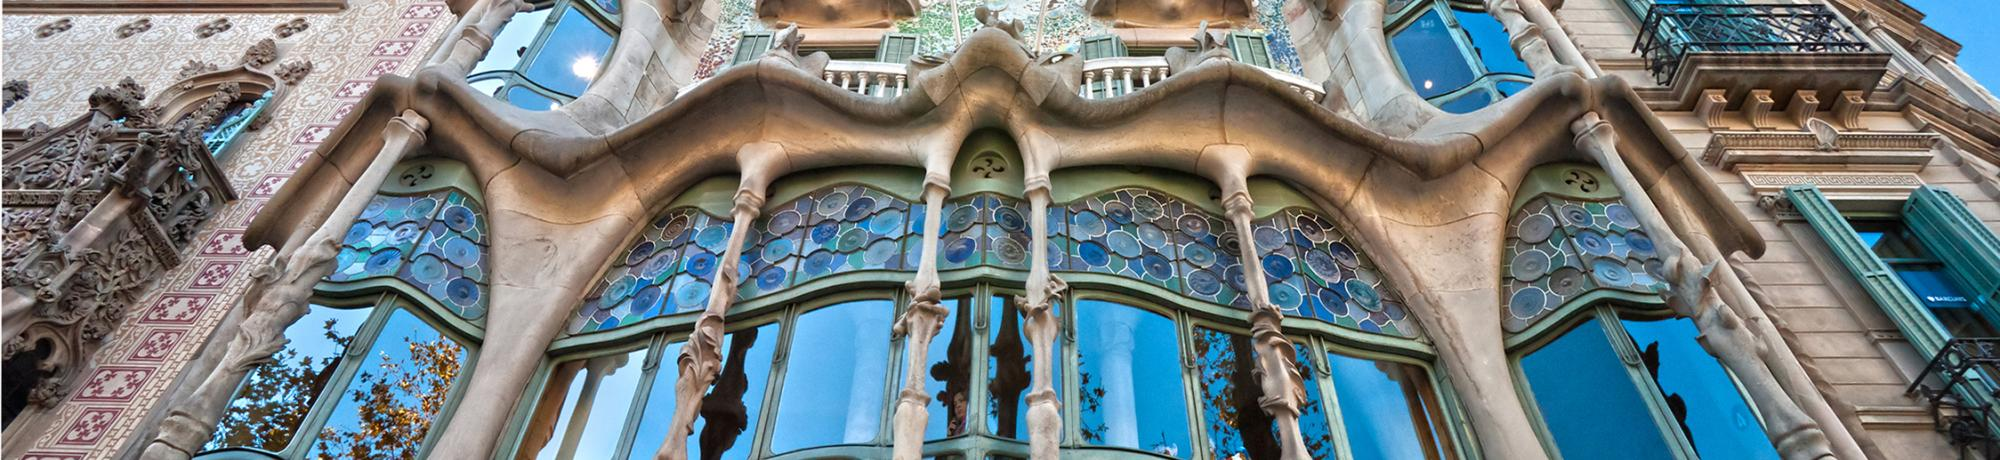 UC Davis Study Abroad, Summer Abroad Spain, Housing and Urbanism in Barcelona Program, Header Image, Cost Page